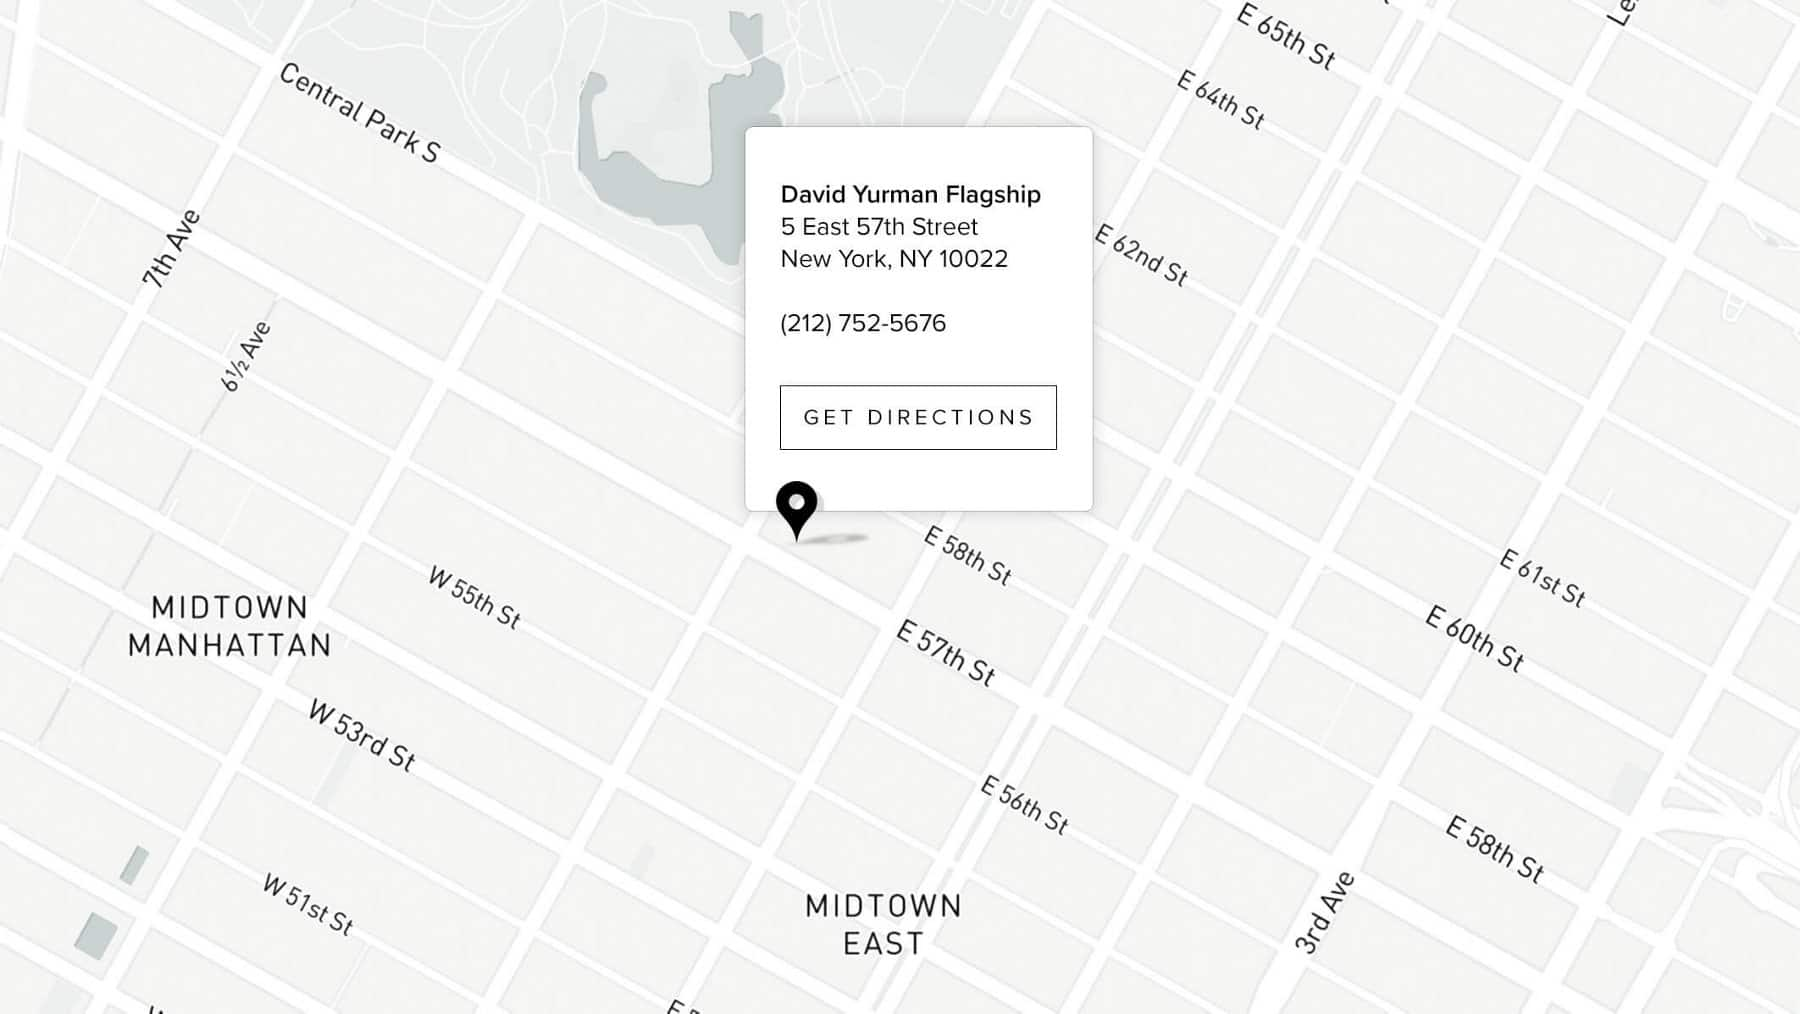 A map showing midtown Manhattan with a pin indicating the David Yurman Flagship at 5 East 57th Street, New York, NY 10022.